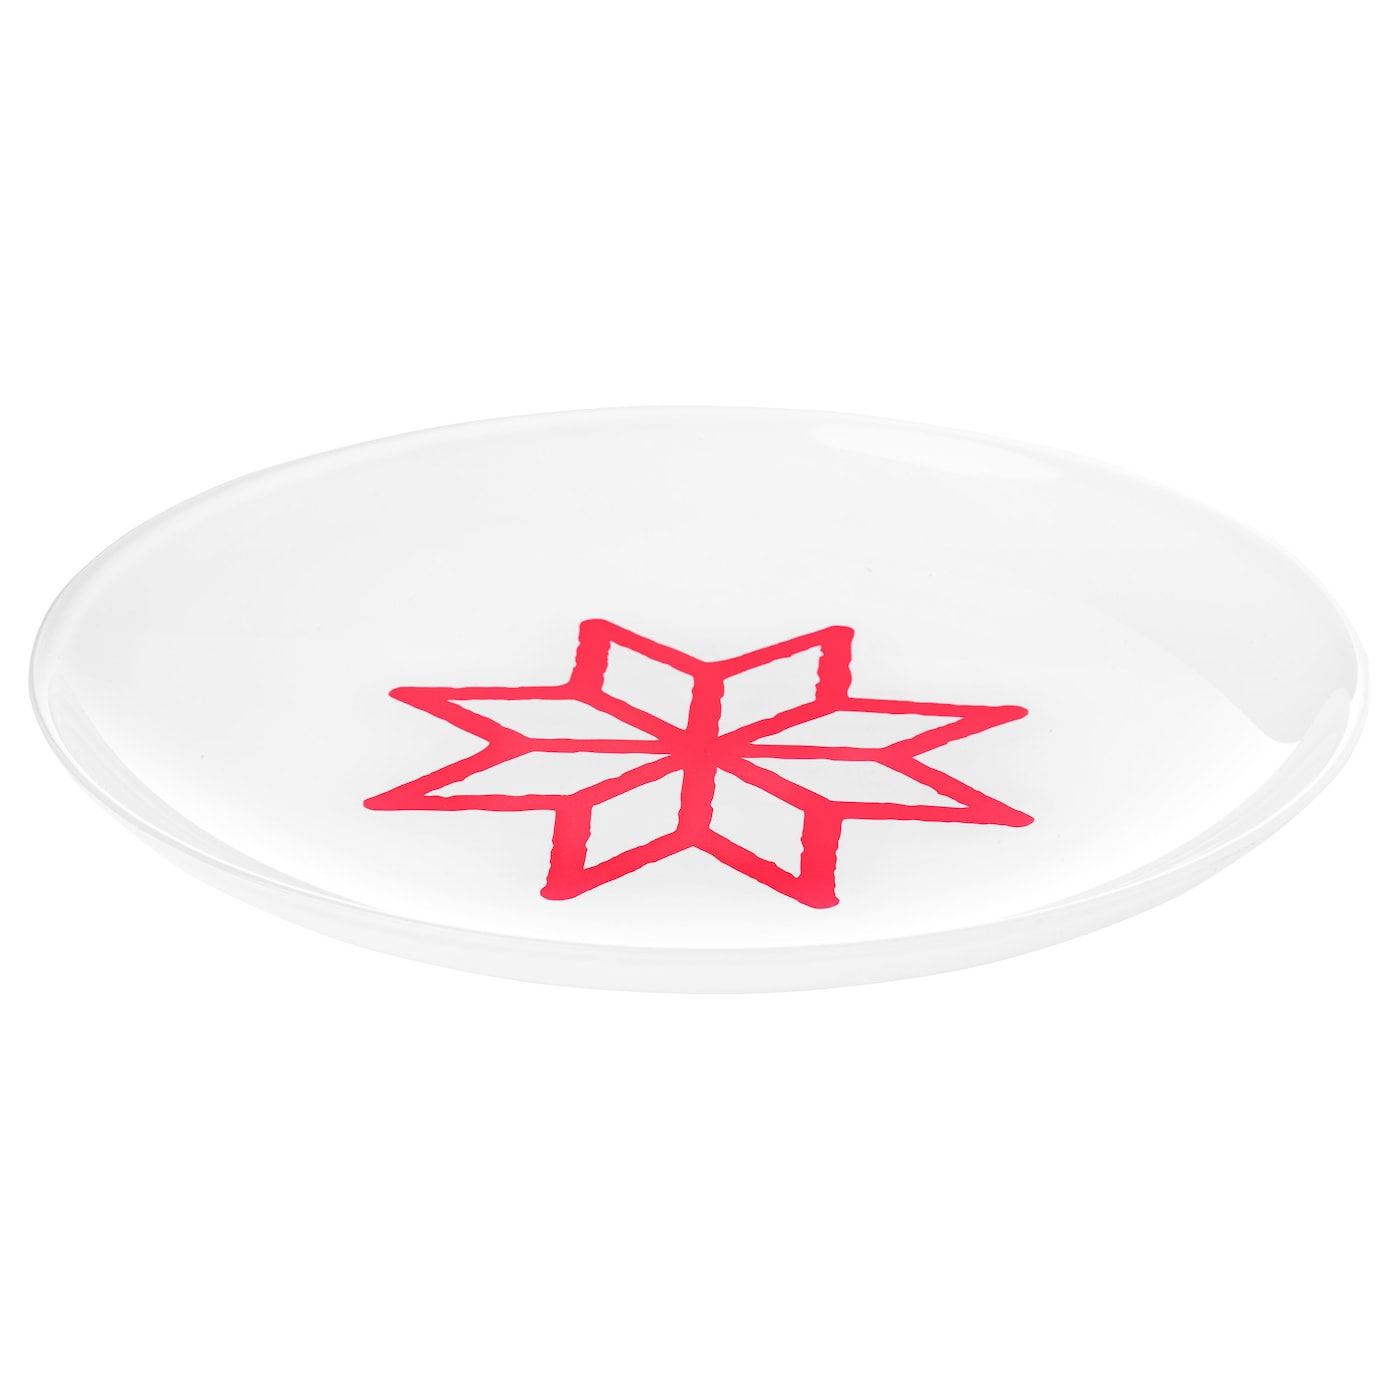 IKEA VINTER 2017 side plate